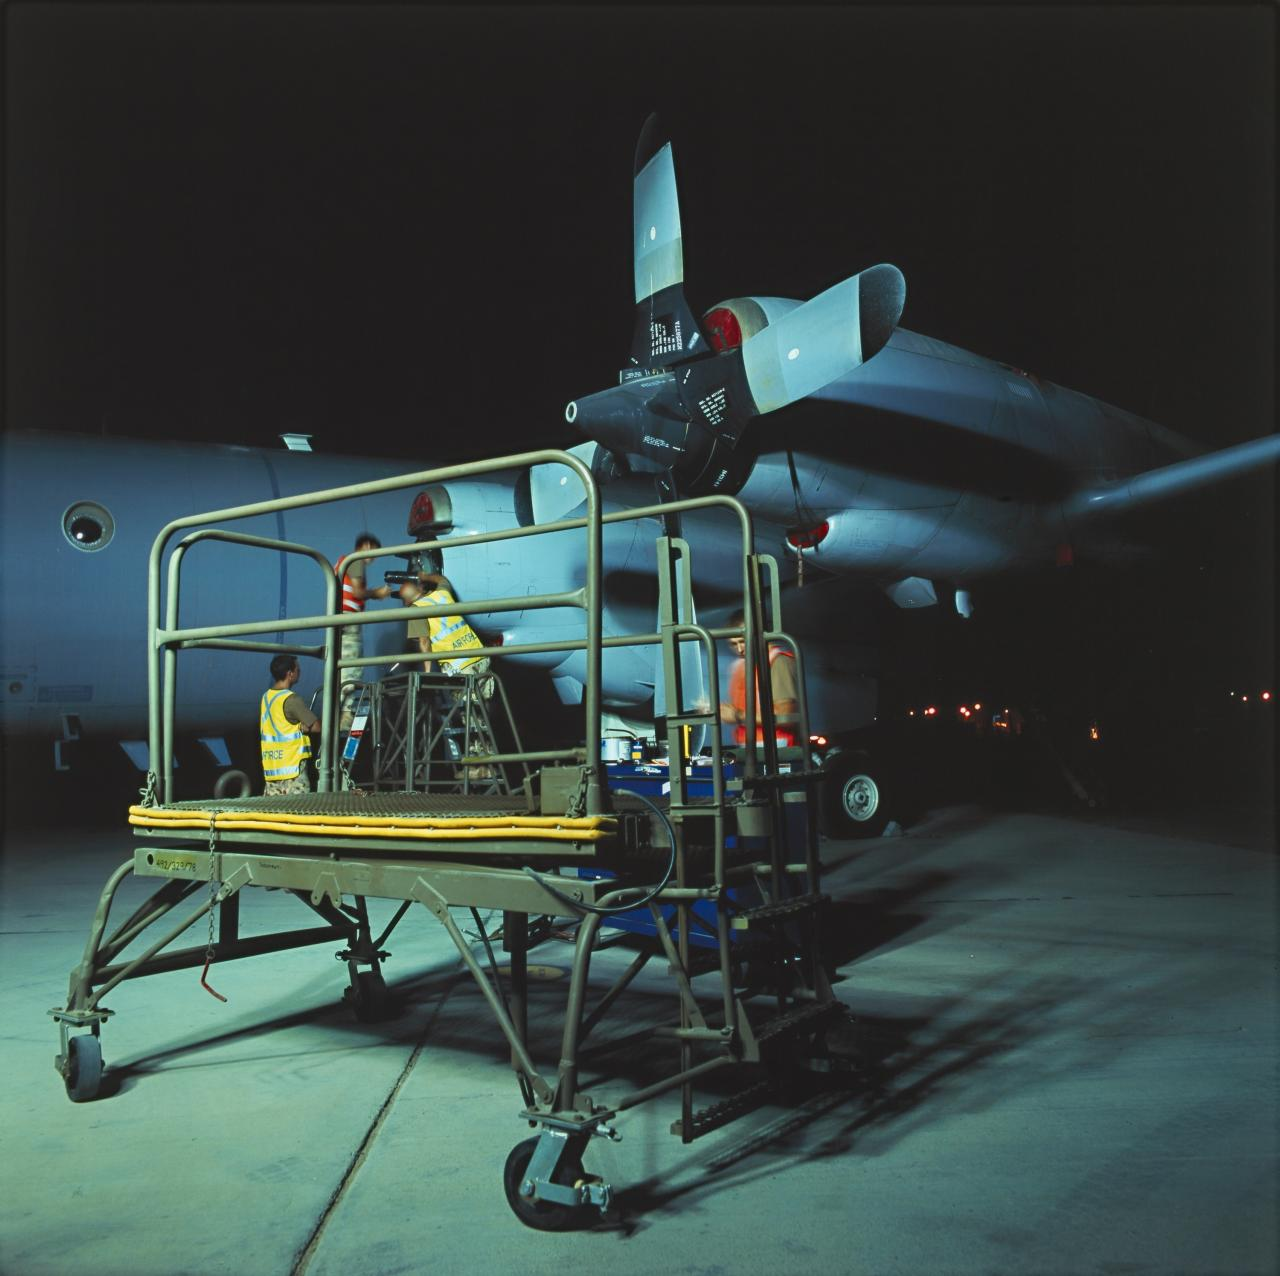 Trolley, propeller change, on flightline at night, military installation, Gulf